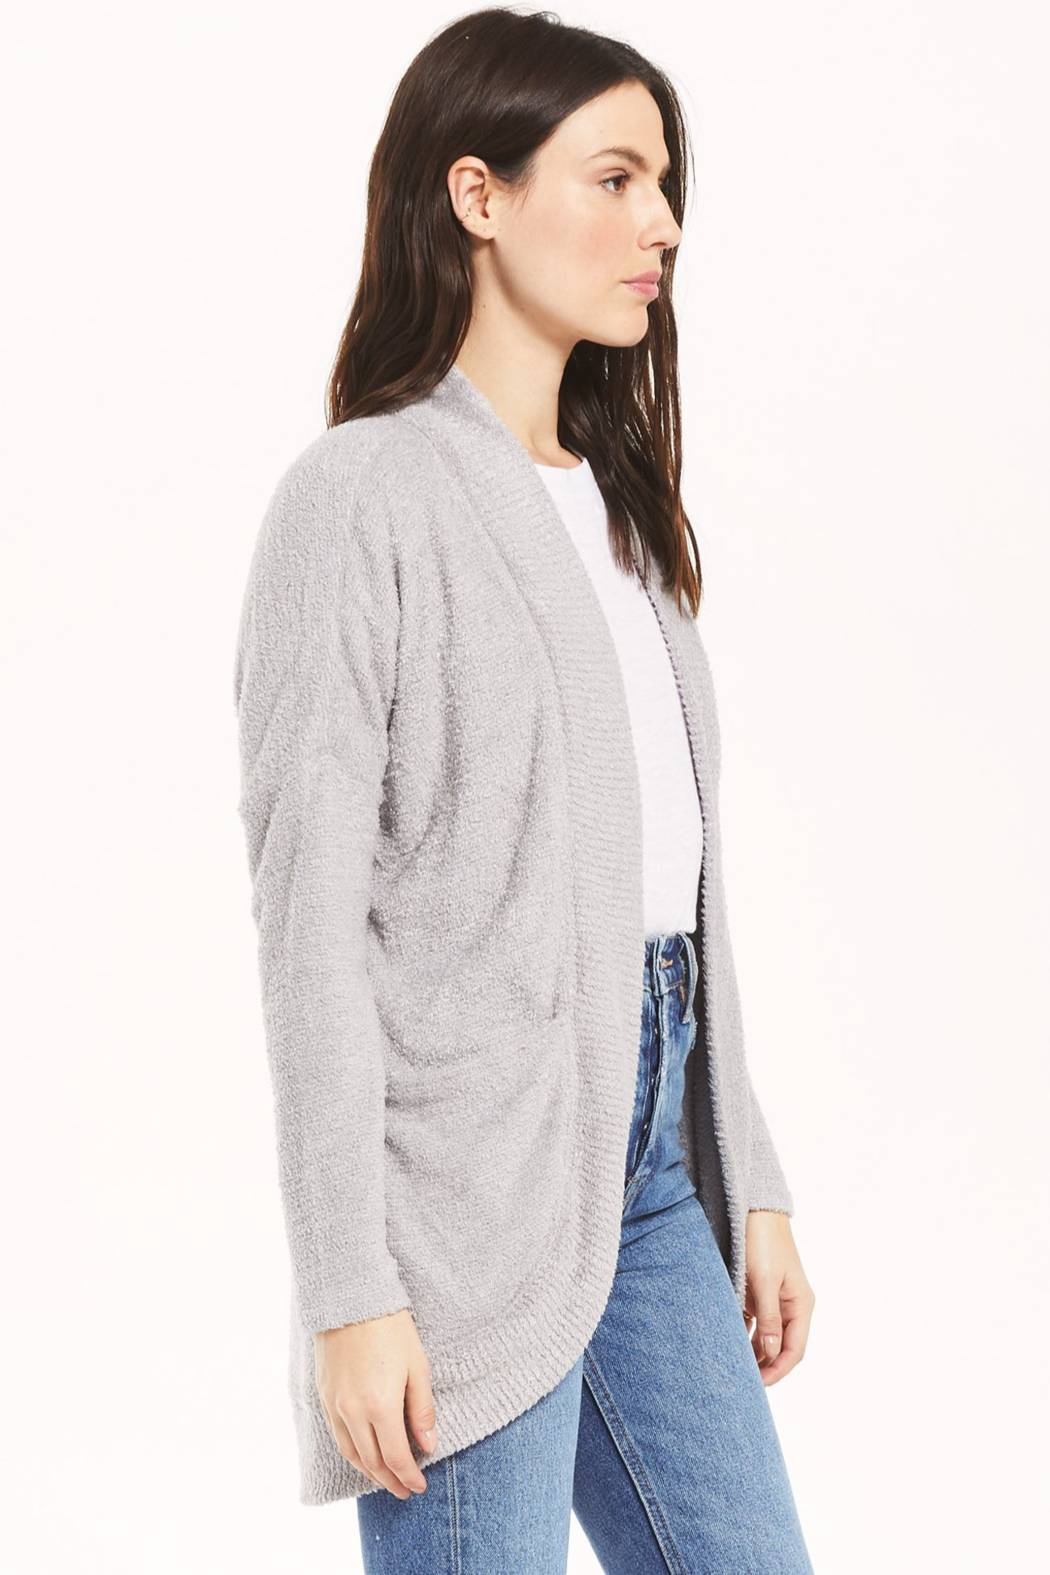 z supply Kaye Feather Cardigan - Side Cropped Image